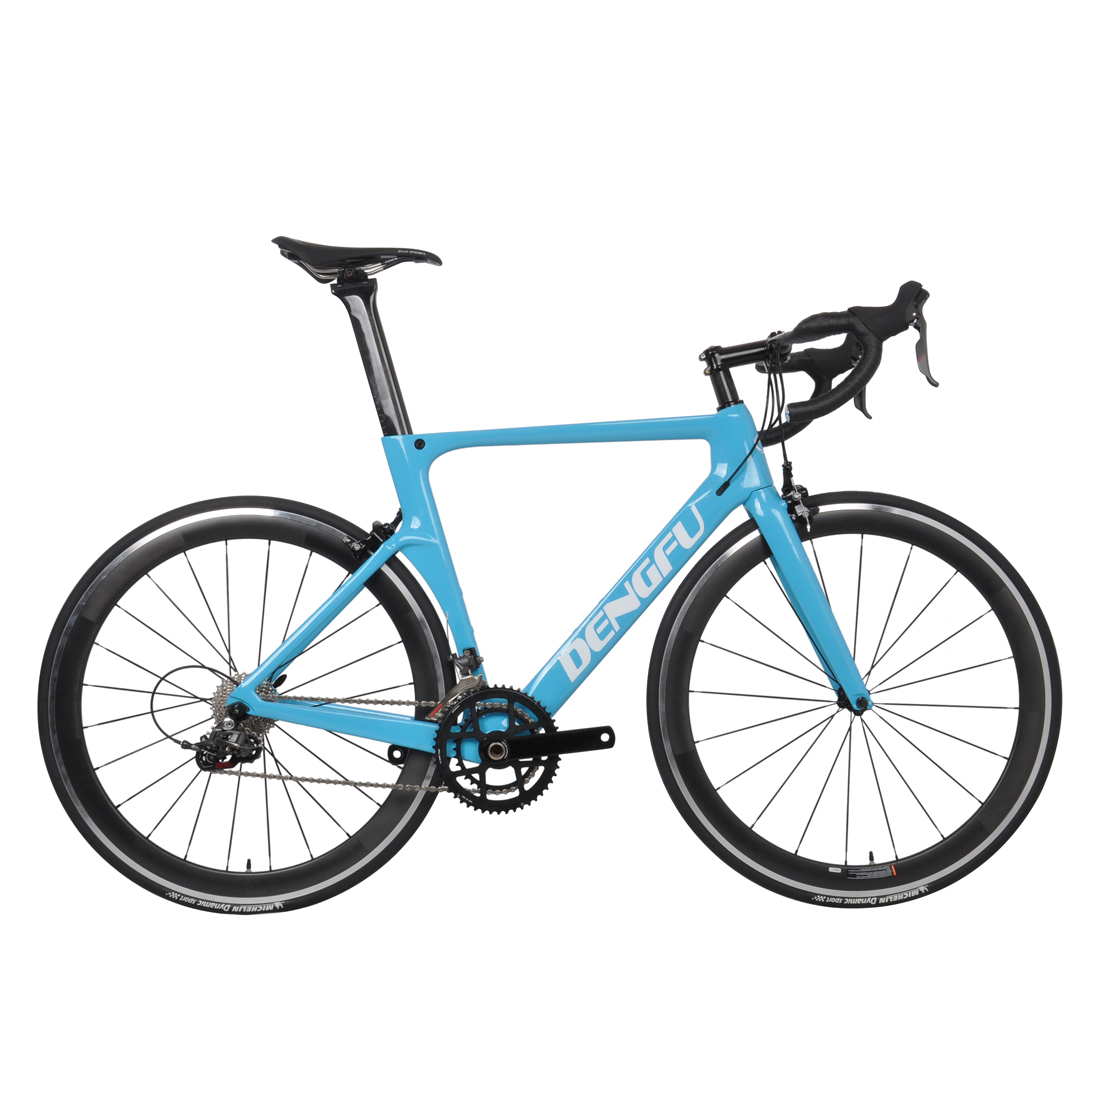 Carbon Fiber Bikes >> Best Selling Aero Racing R06 Frame Carbon Fiber Bikes V Brake Sky Blue Color Complete Carbon Road Bike View Carbon Road Bike Produ Product Details